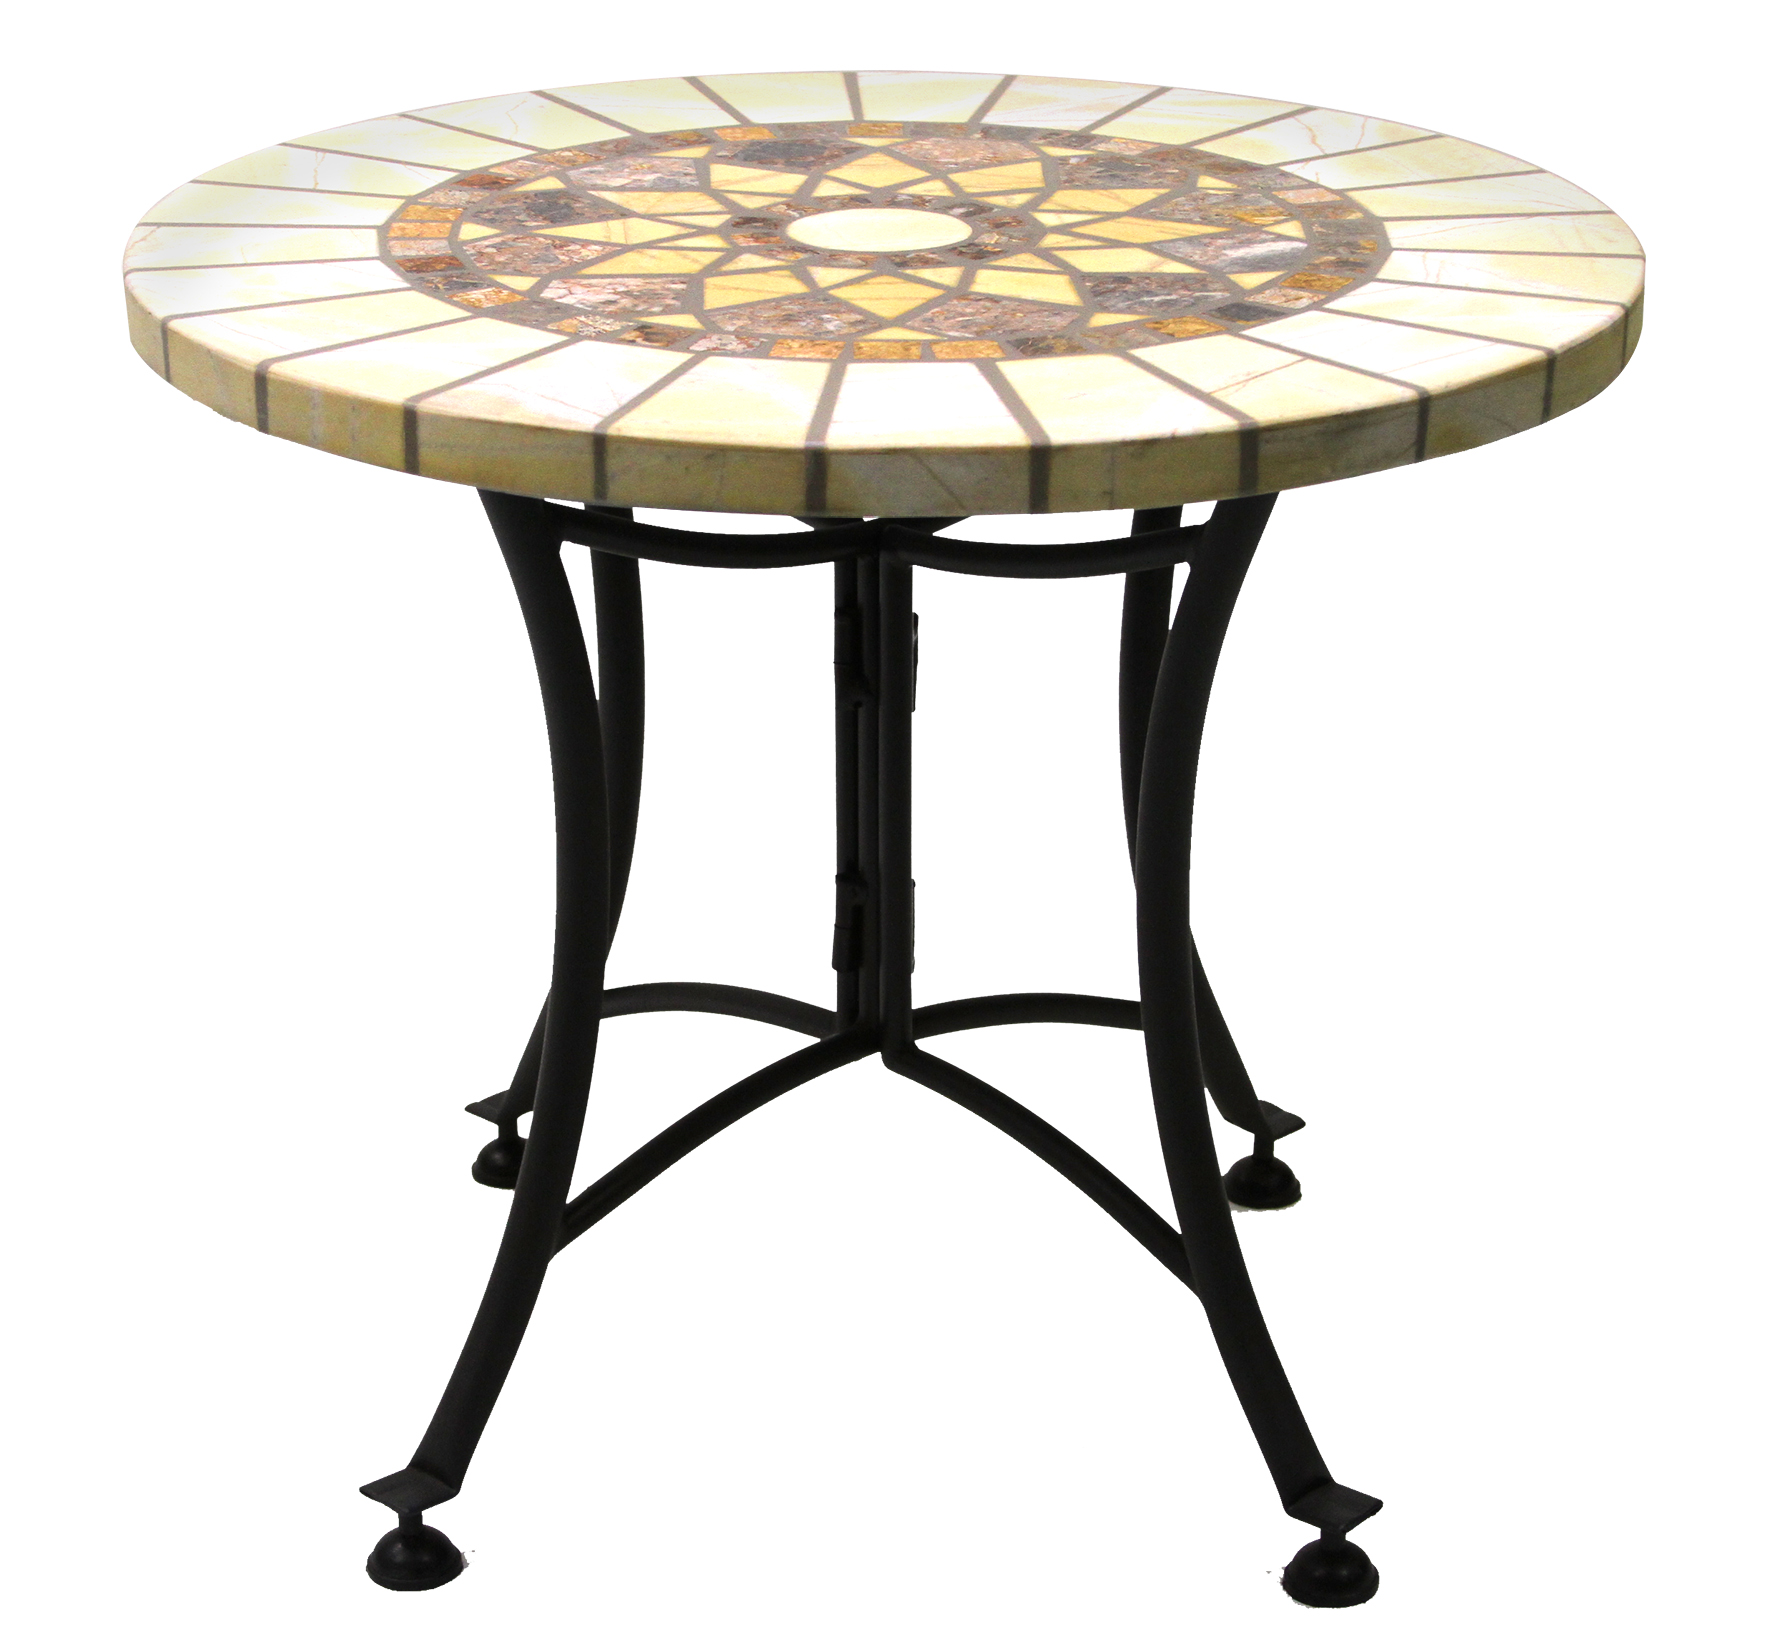 stylish outdoor accent table with results for quotoutdoor side beautiful honeycomb marble mosaic end metal base small patio tables designer lighting brands mirrored desk dining